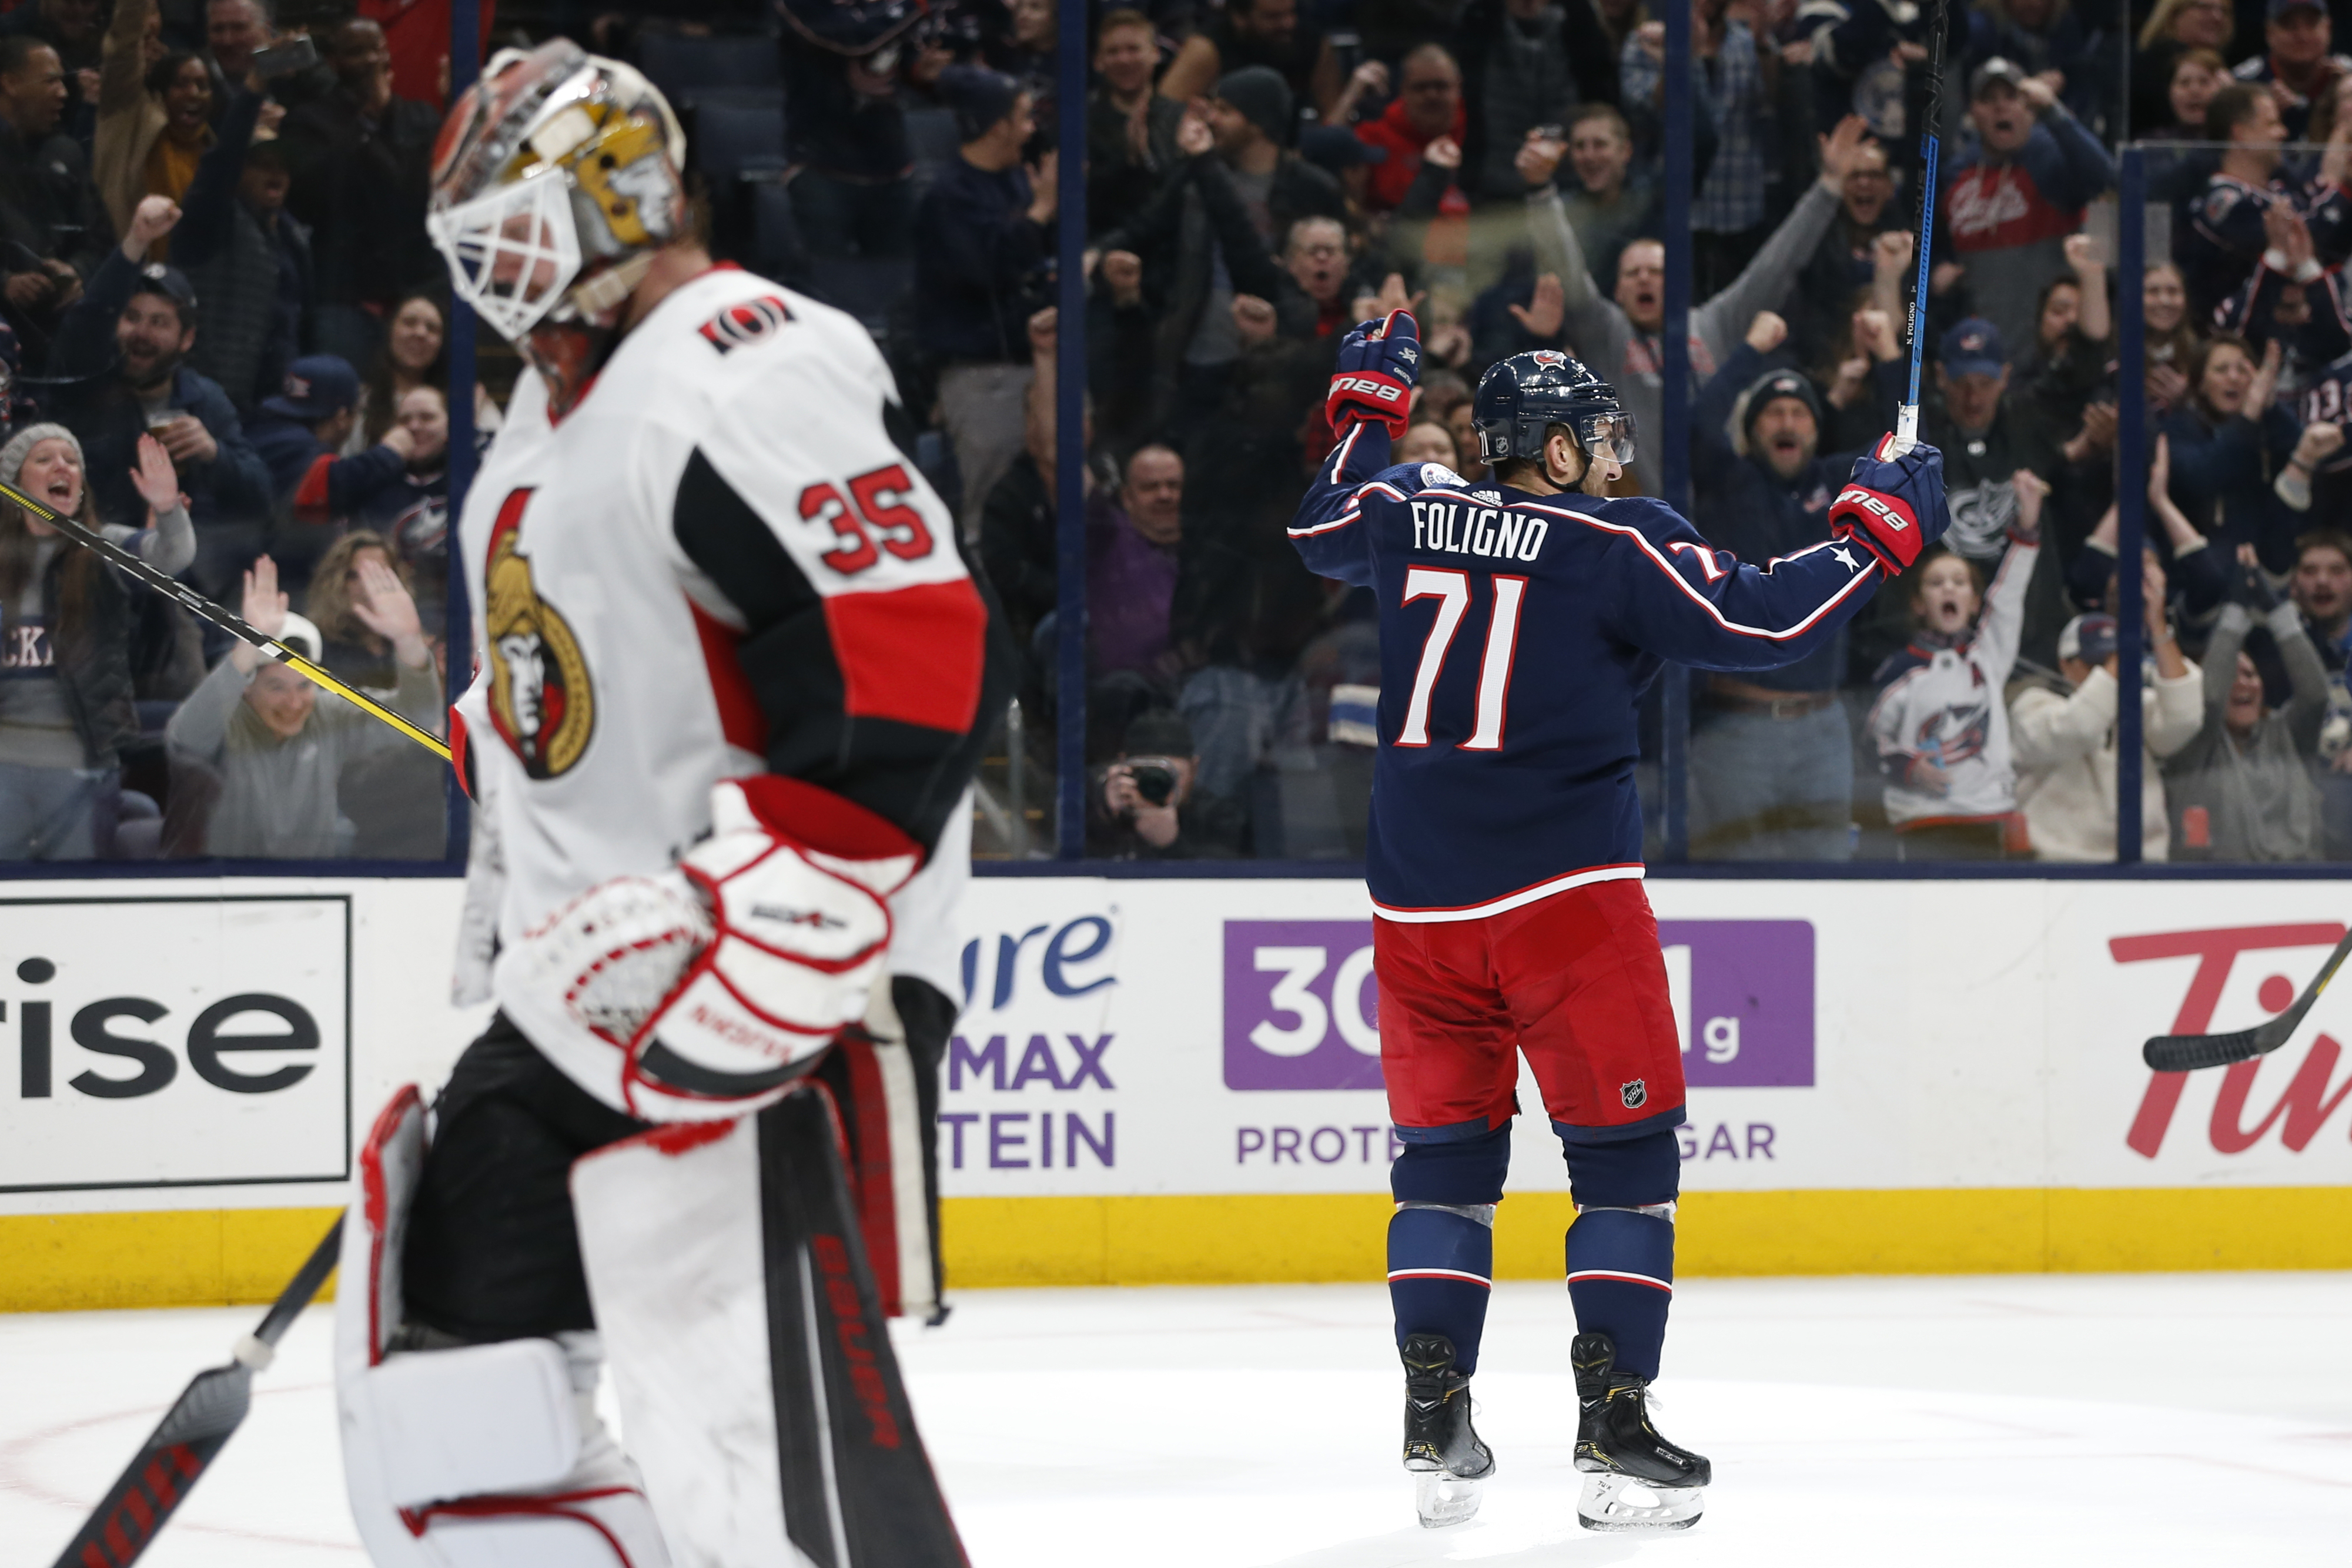 Bemstrom's OT tally lifts Blue Jackets over Senators 4-3